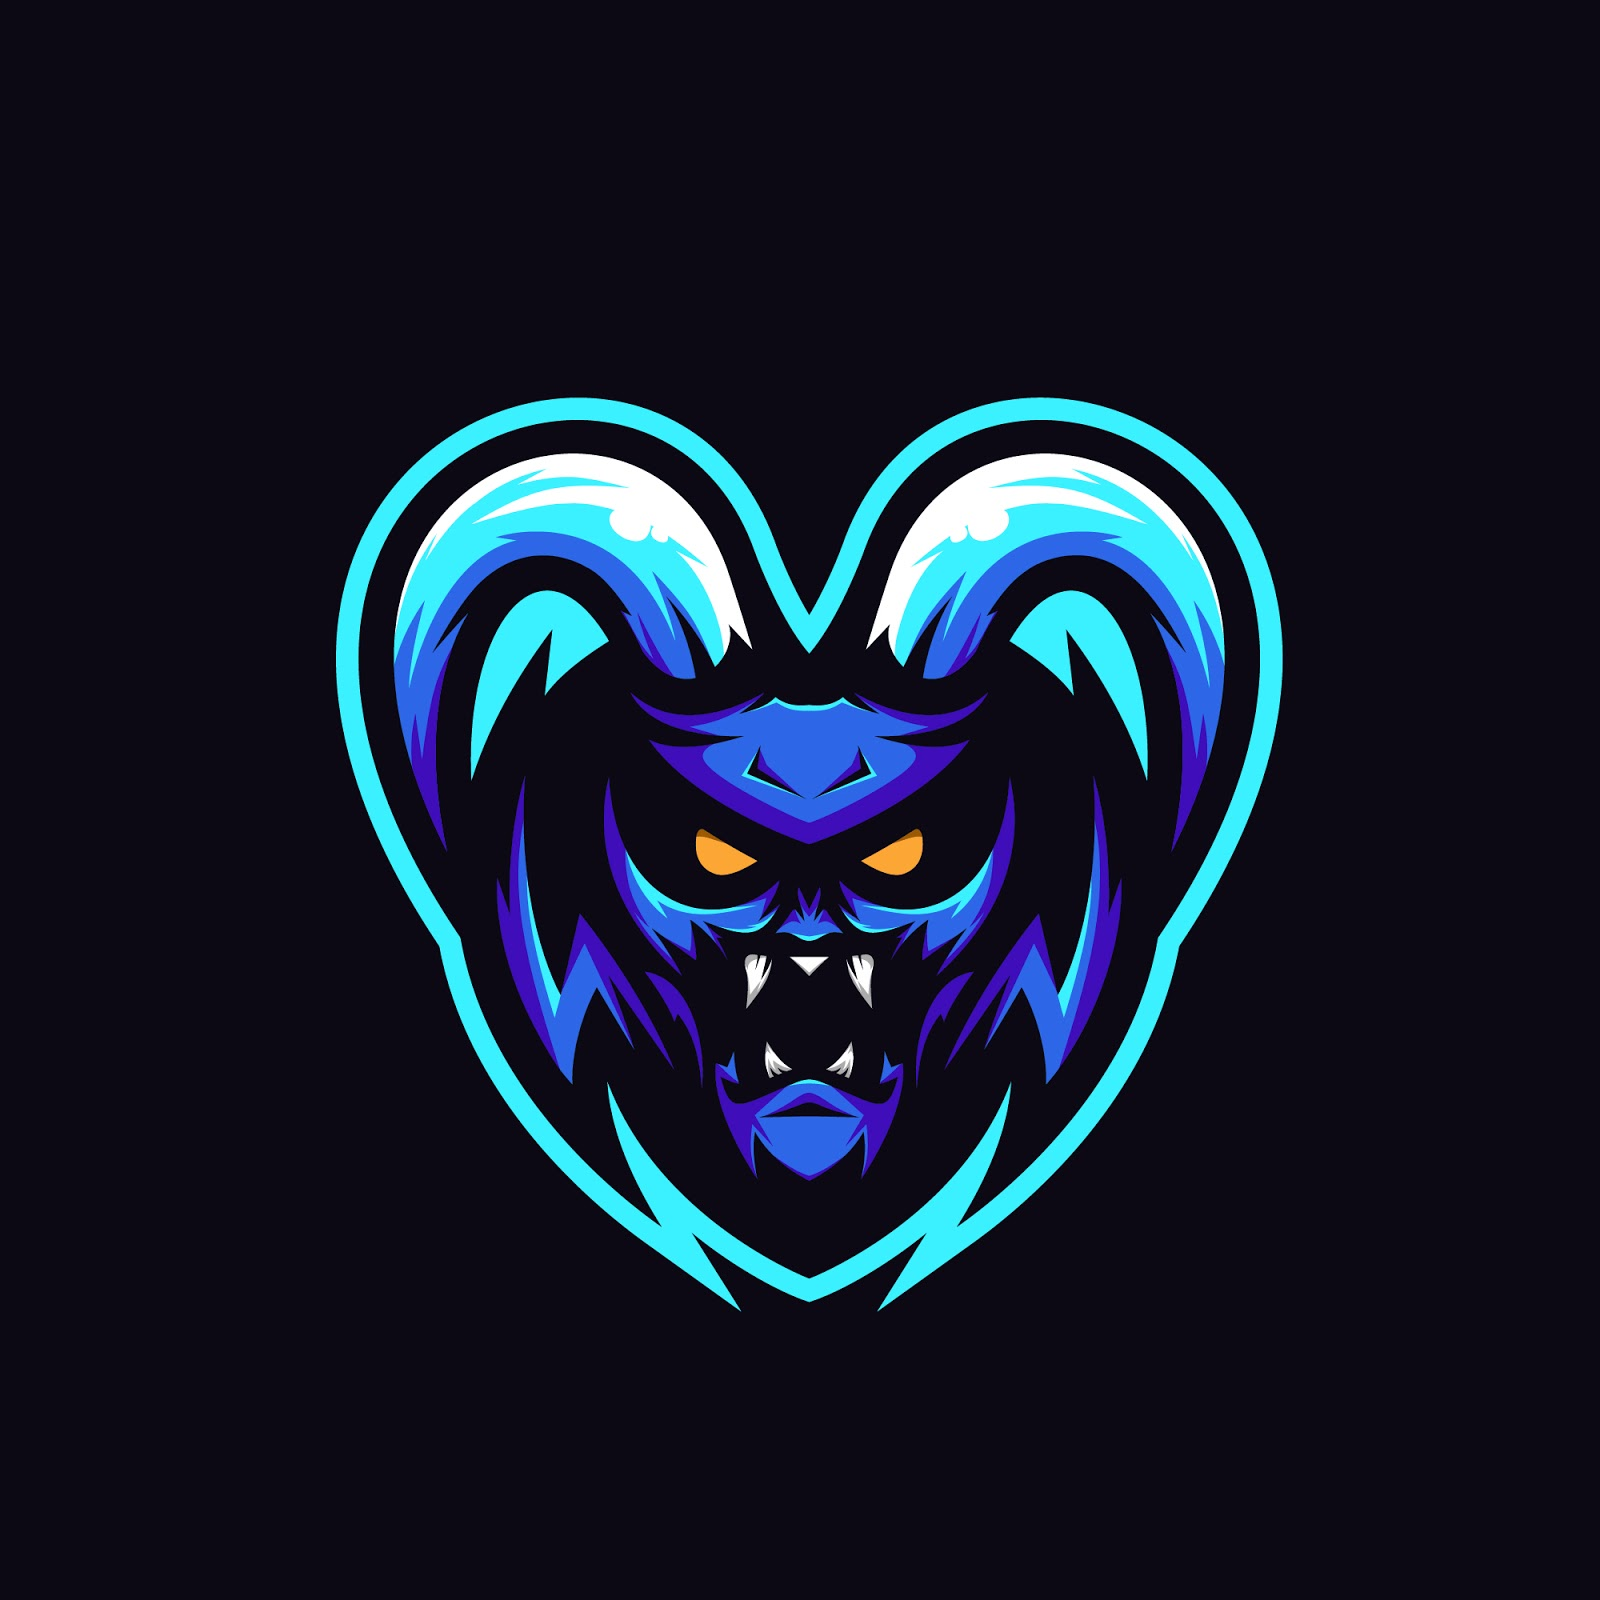 Monster Logo Illustration Premium Free Download Vector CDR, AI, EPS and PNG Formats